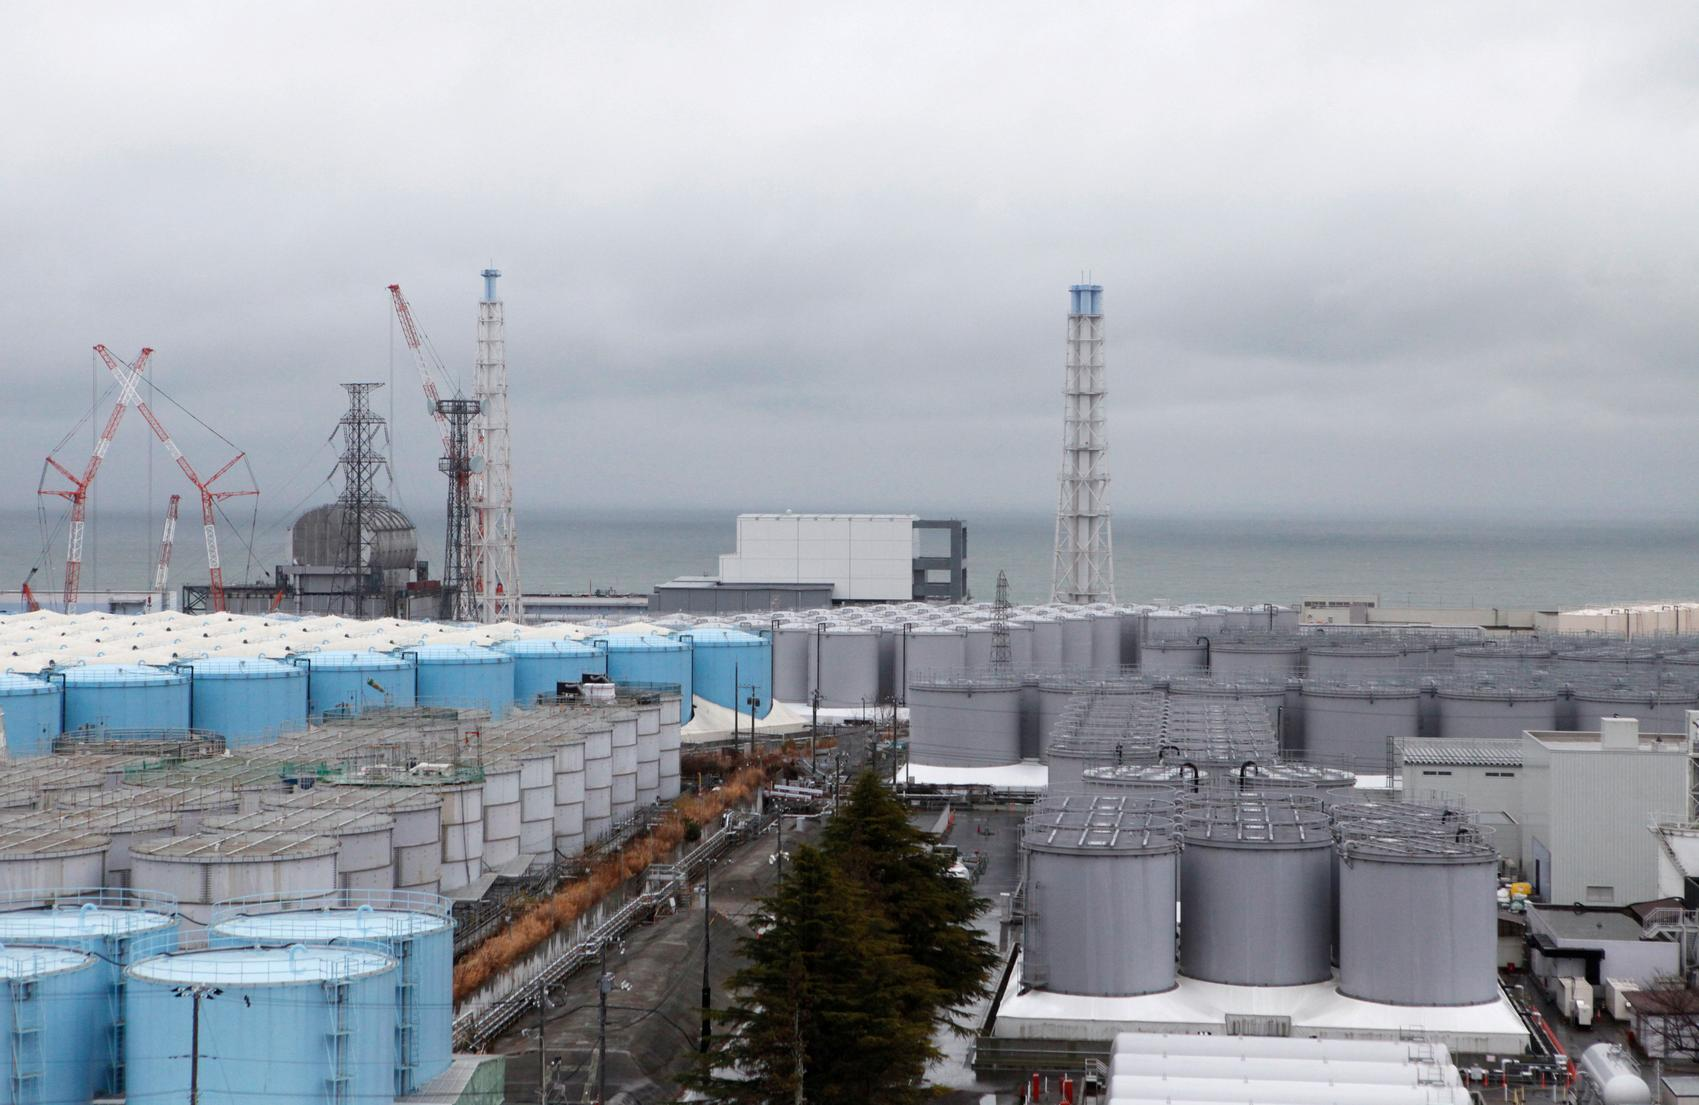 Japan to release Fukushima's contaminated water into sea: reports